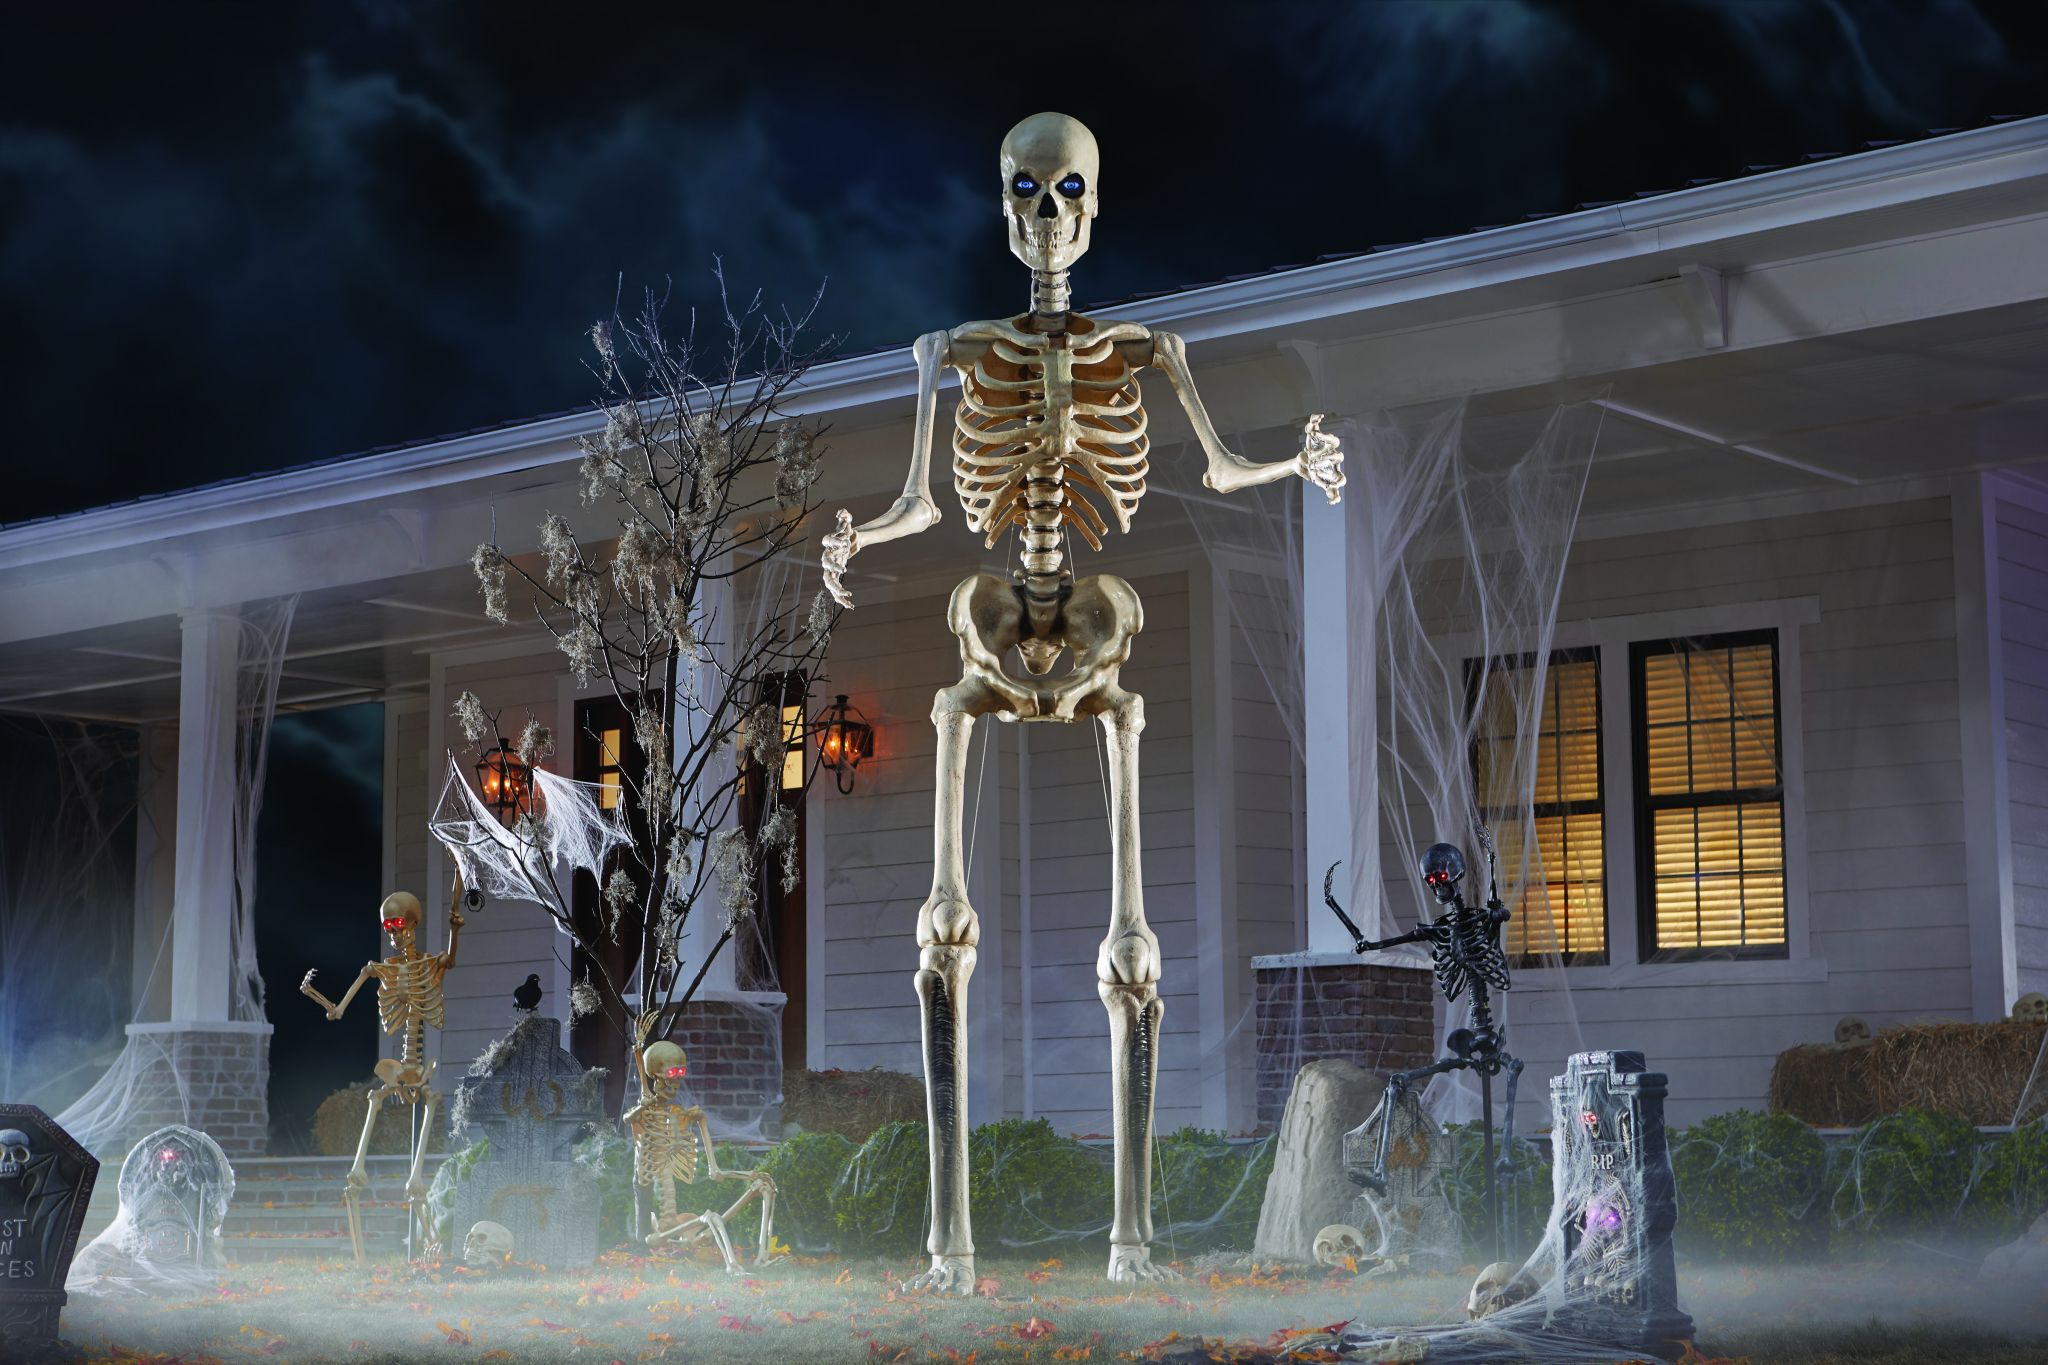 The 12 Foot Tall Skeletons From Home Depot Are The New Heroes Of Halloween